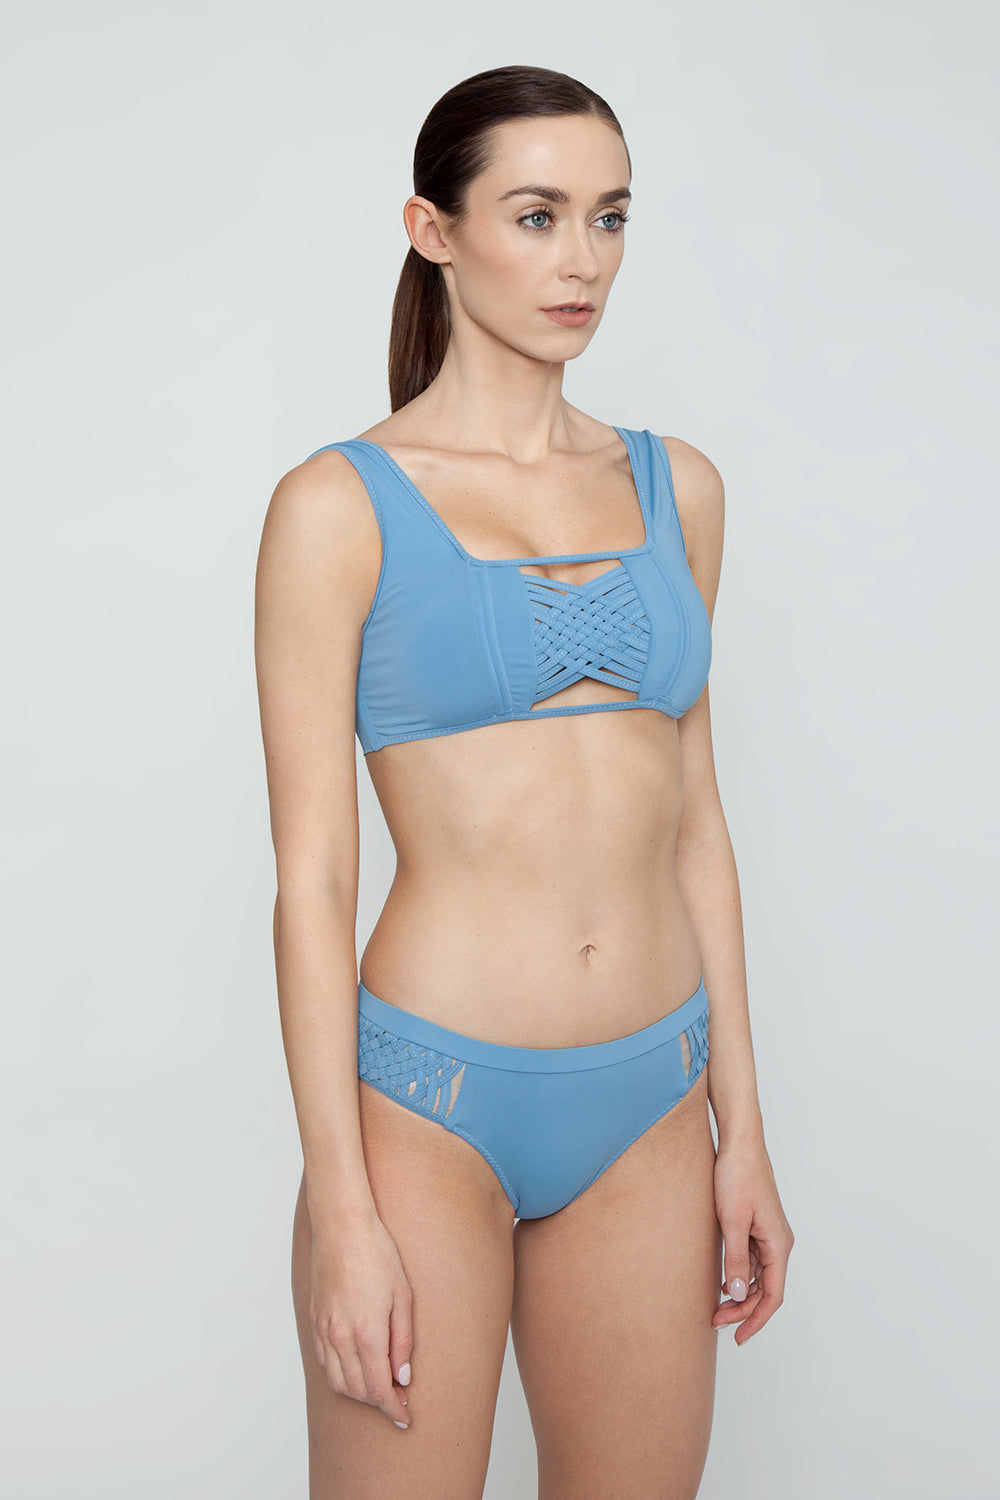 CLUBE BOSSA Sober Weaving Bralette Bikini Top - Riviera Blue Bikini Top | Riviera Blue| Clube Bossa Sober Weaving Bralette Bikini Top - Riviera Blue Features:  Bralette  Front cut out detail Center weaving detail Thick shoulder straps Side View